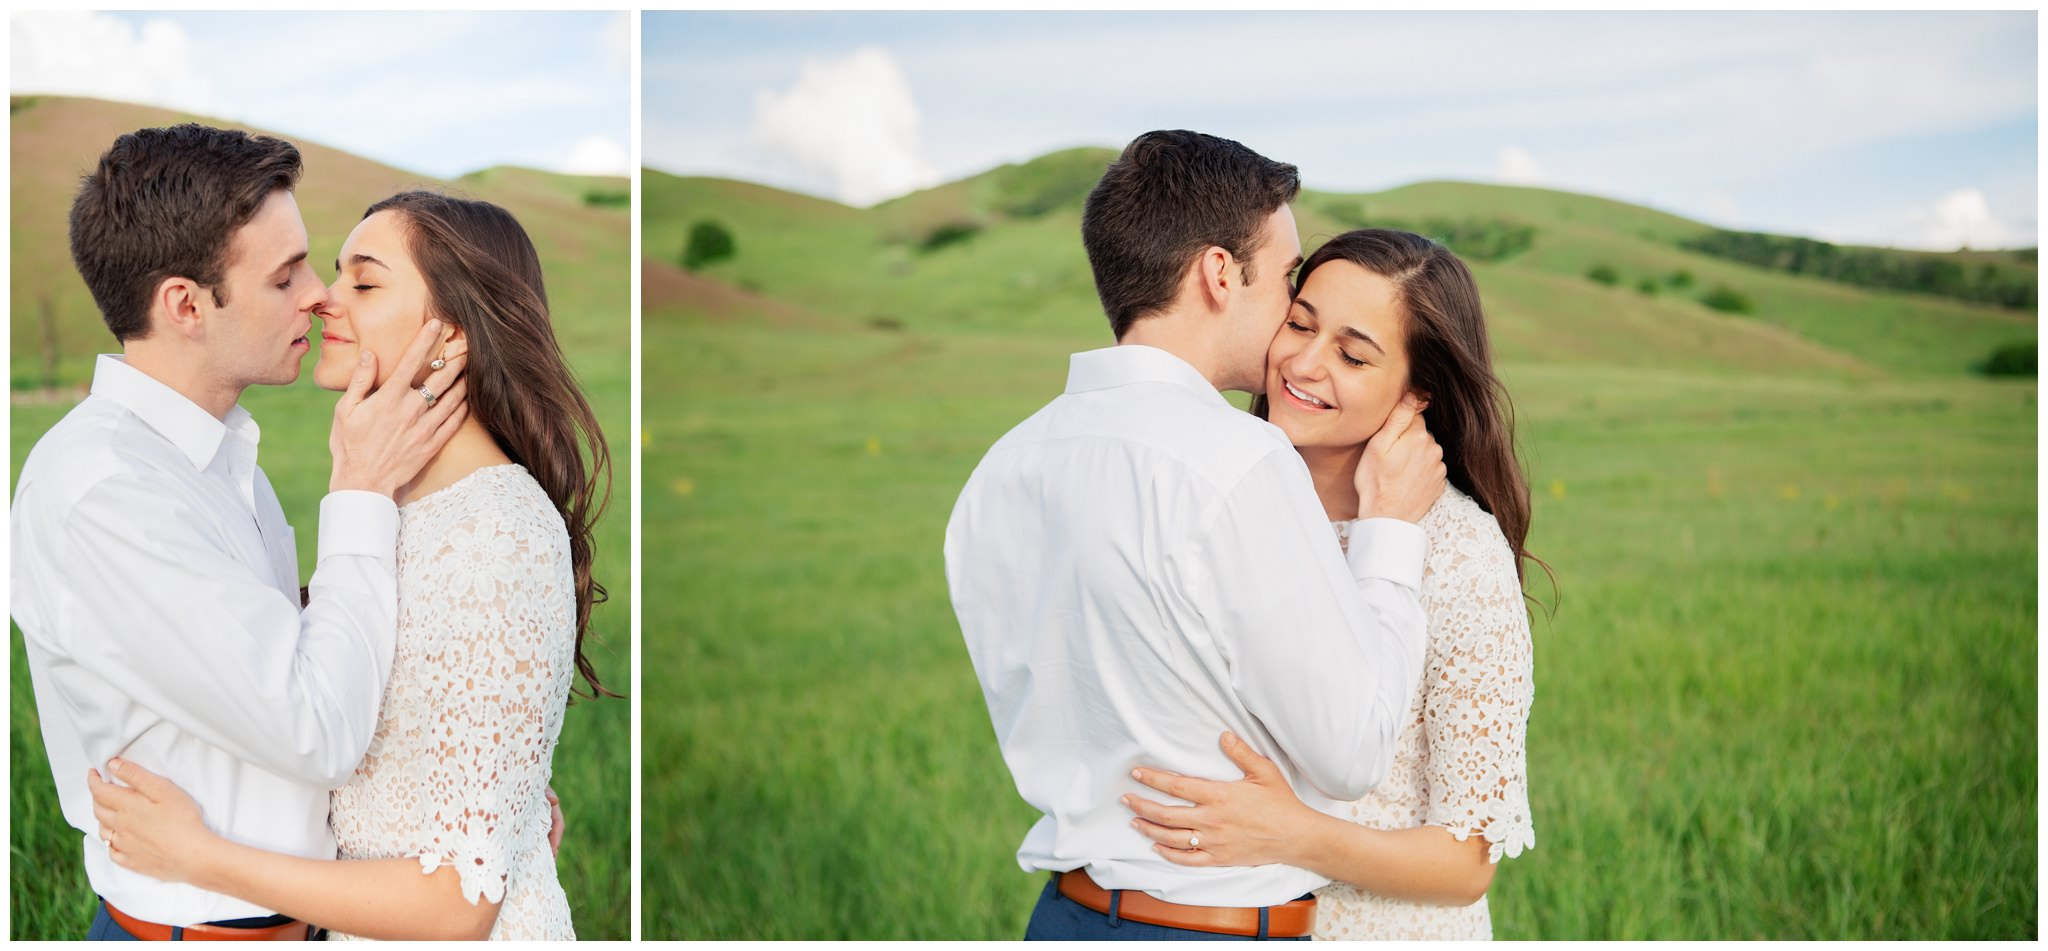 Couple kissing at Tunnel springs for their engagement photos